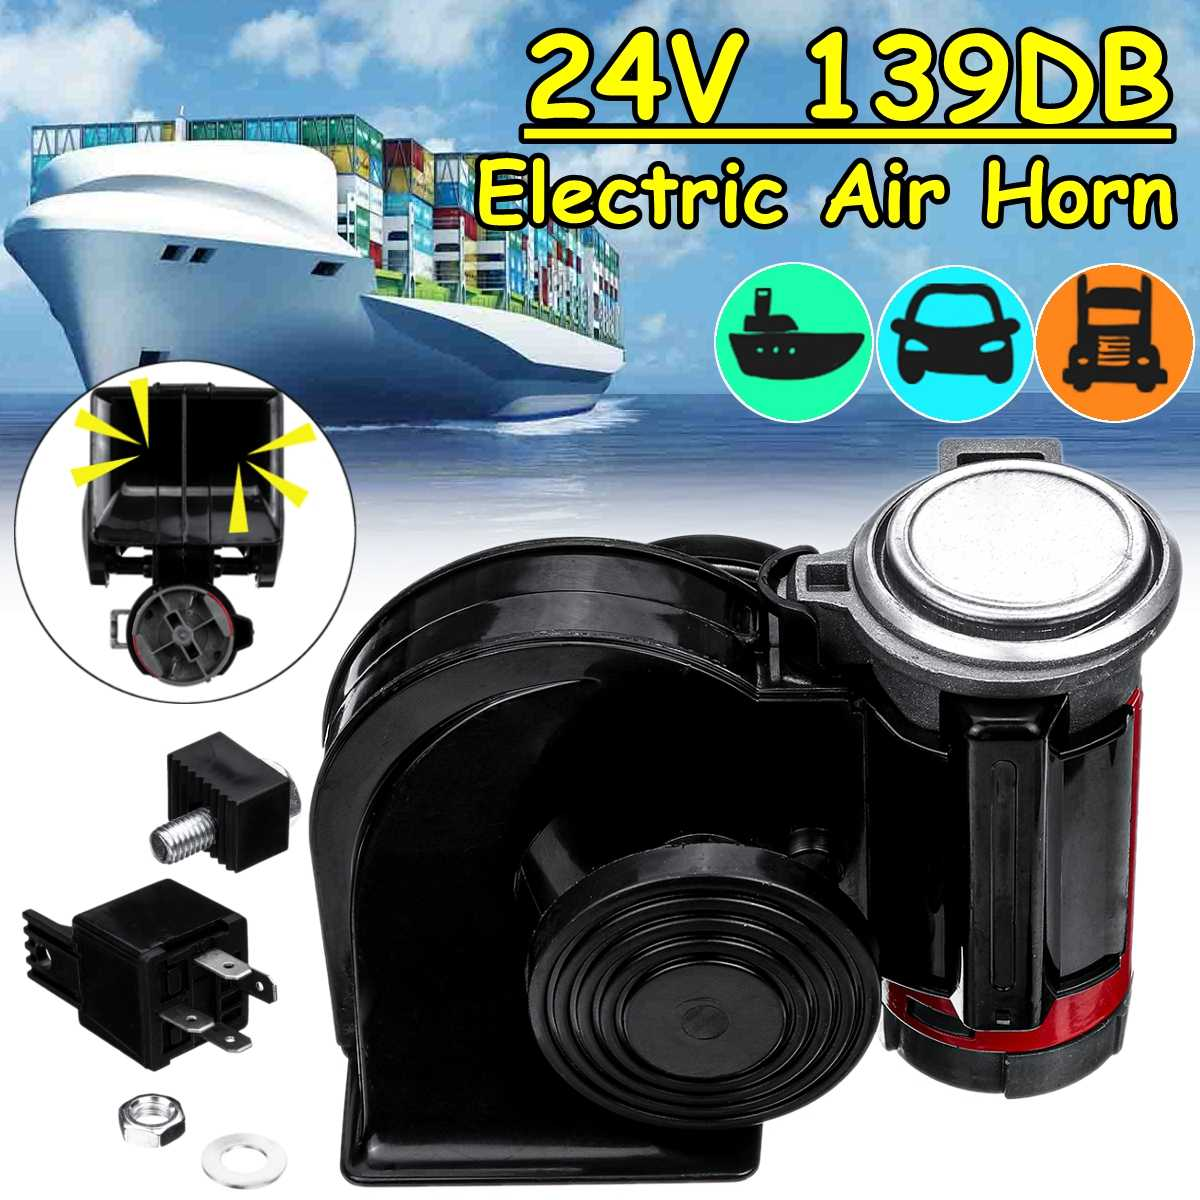 24V <font><b>139dB</b></font> Electric Pump Air Loud <font><b>Horn</b></font> Alarm Compact Dual Tone For Car Truck Motorcycle Pickup Accessories image